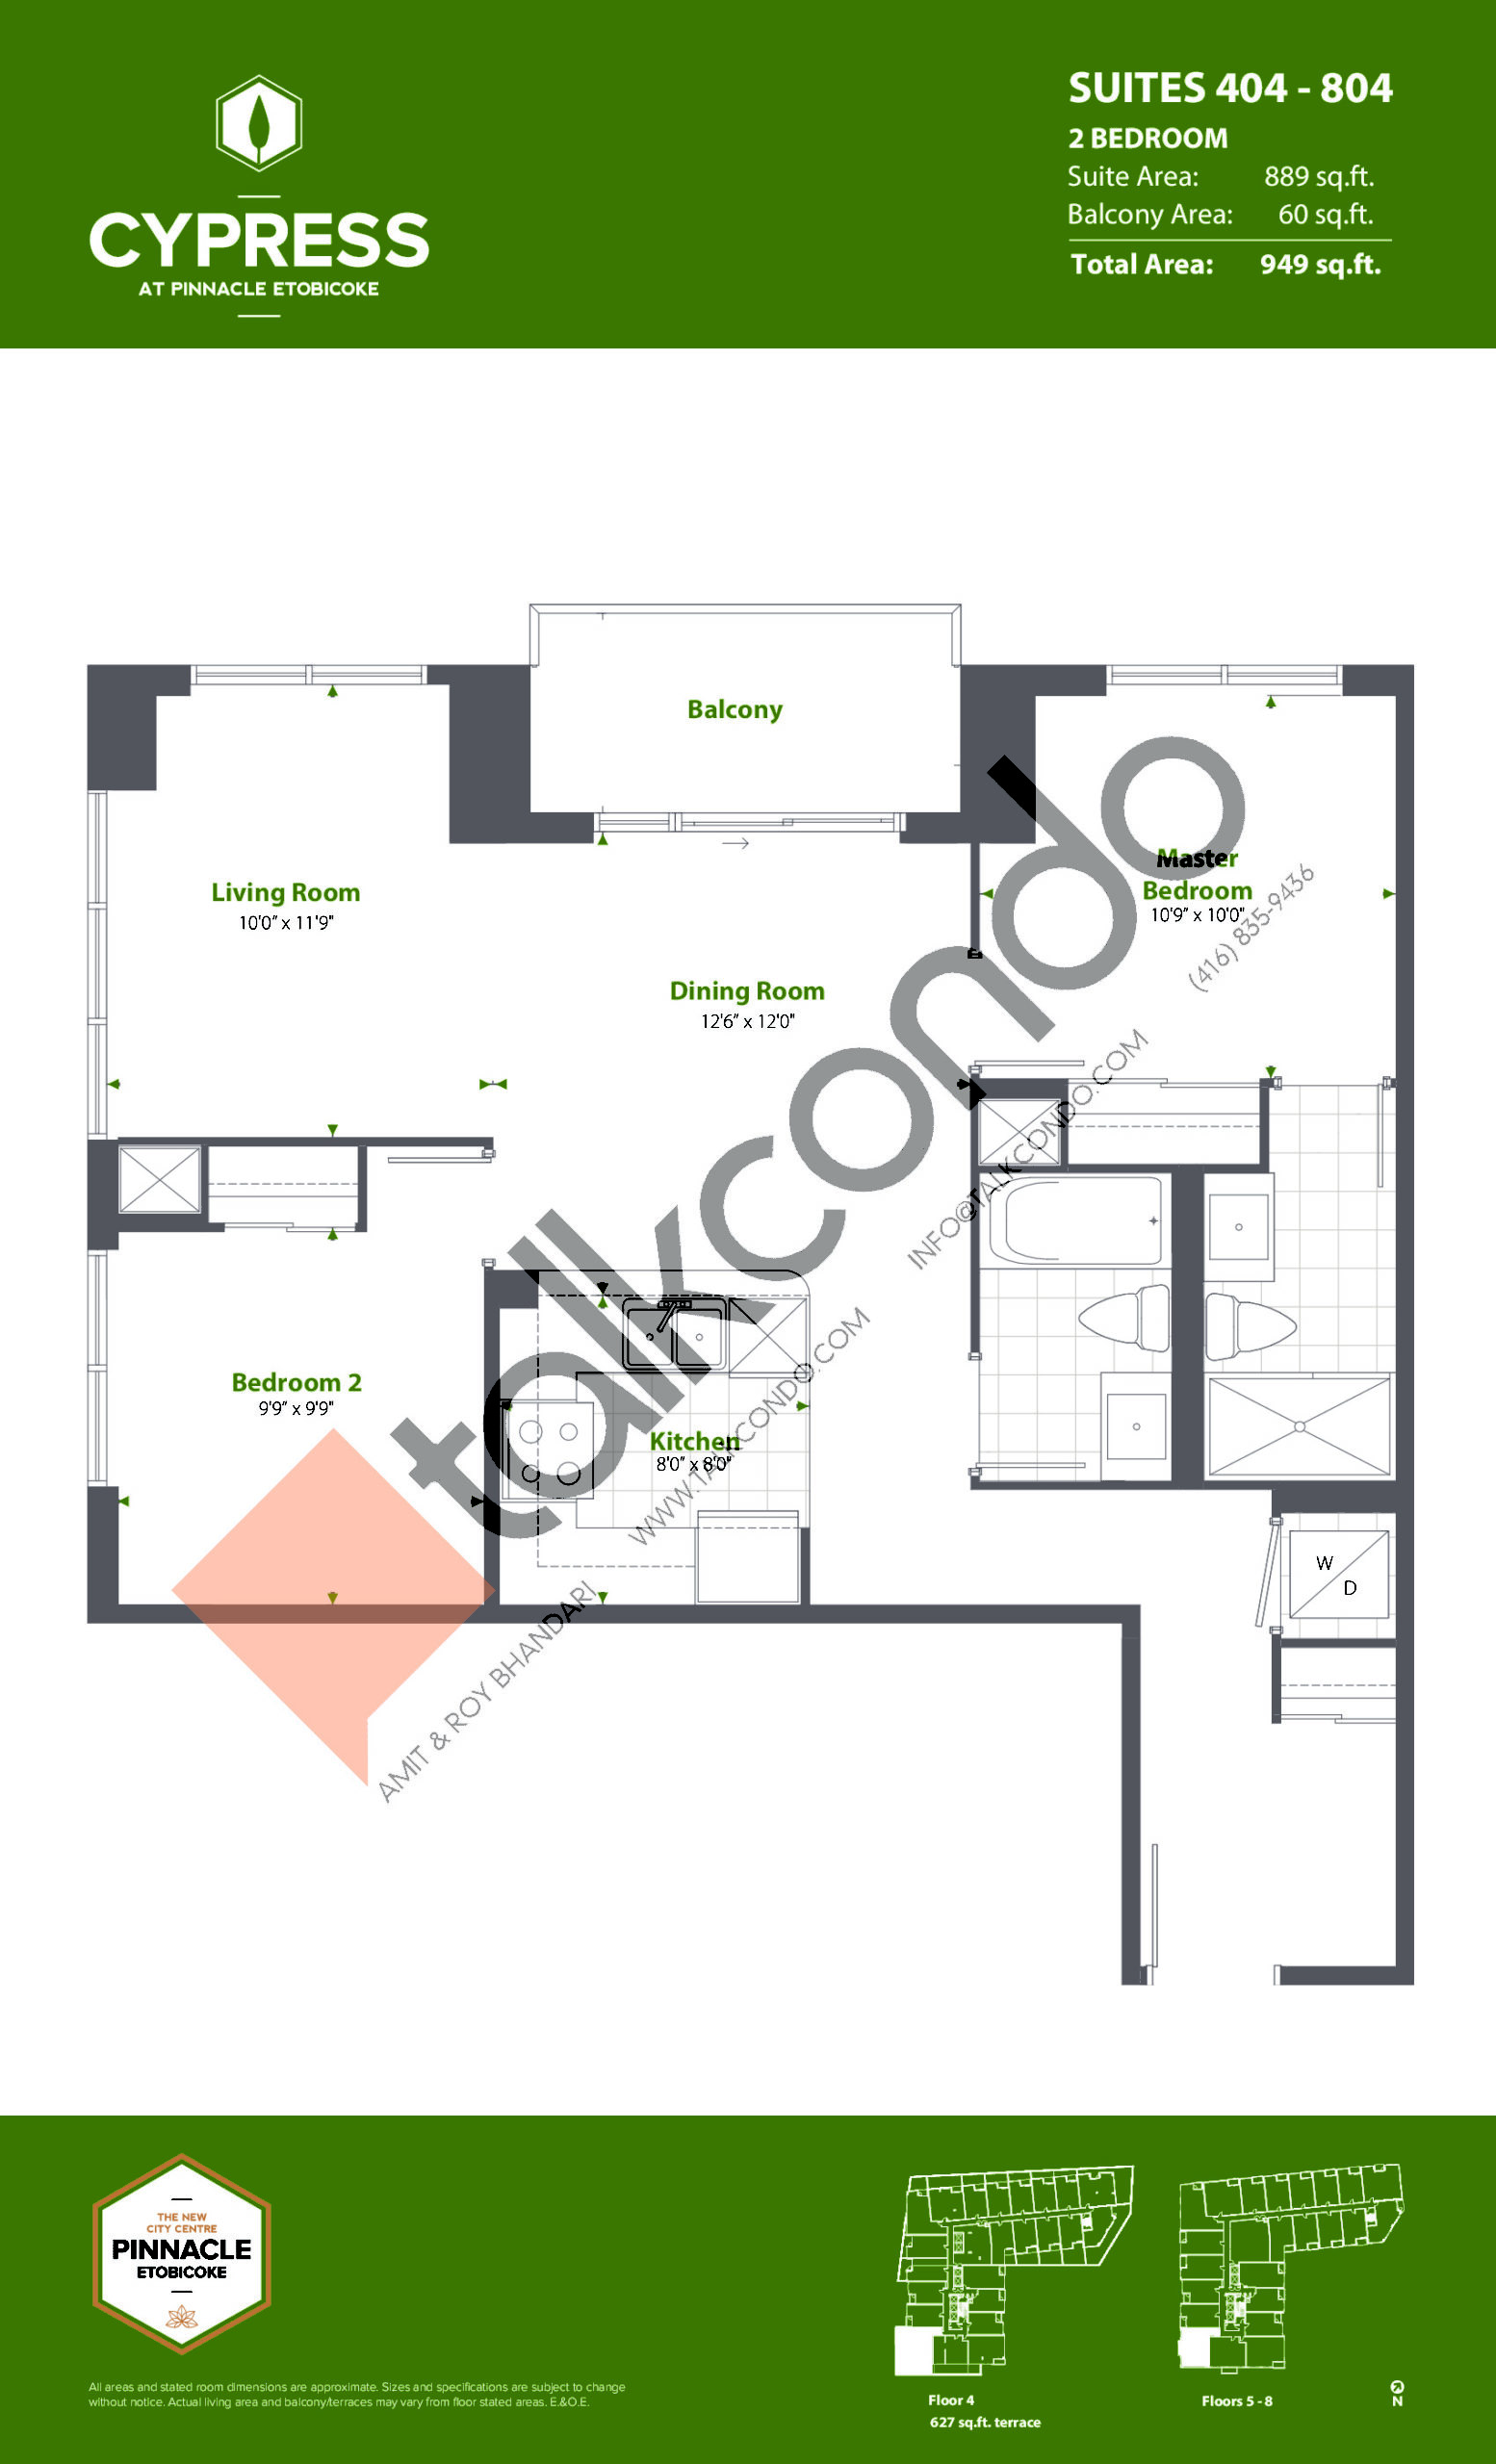 Suites 404 - 804 (Podium) Floor Plan at Cypress at Pinnacle Etobicoke - 889 sq.ft